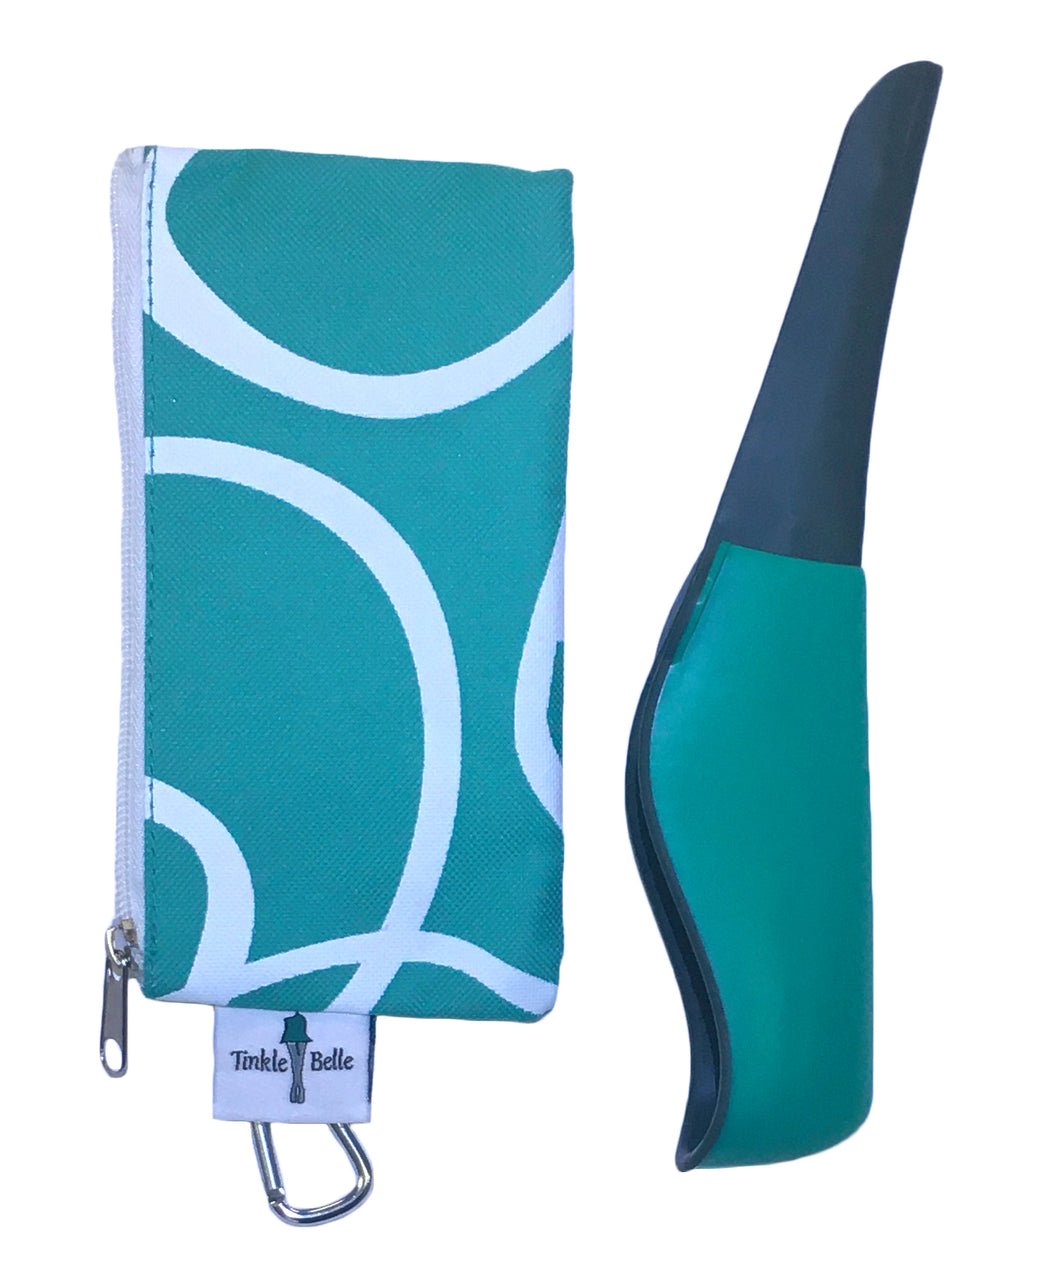 The Tinkle Belle Portable Female Urination Device, Teal and Grey with Case